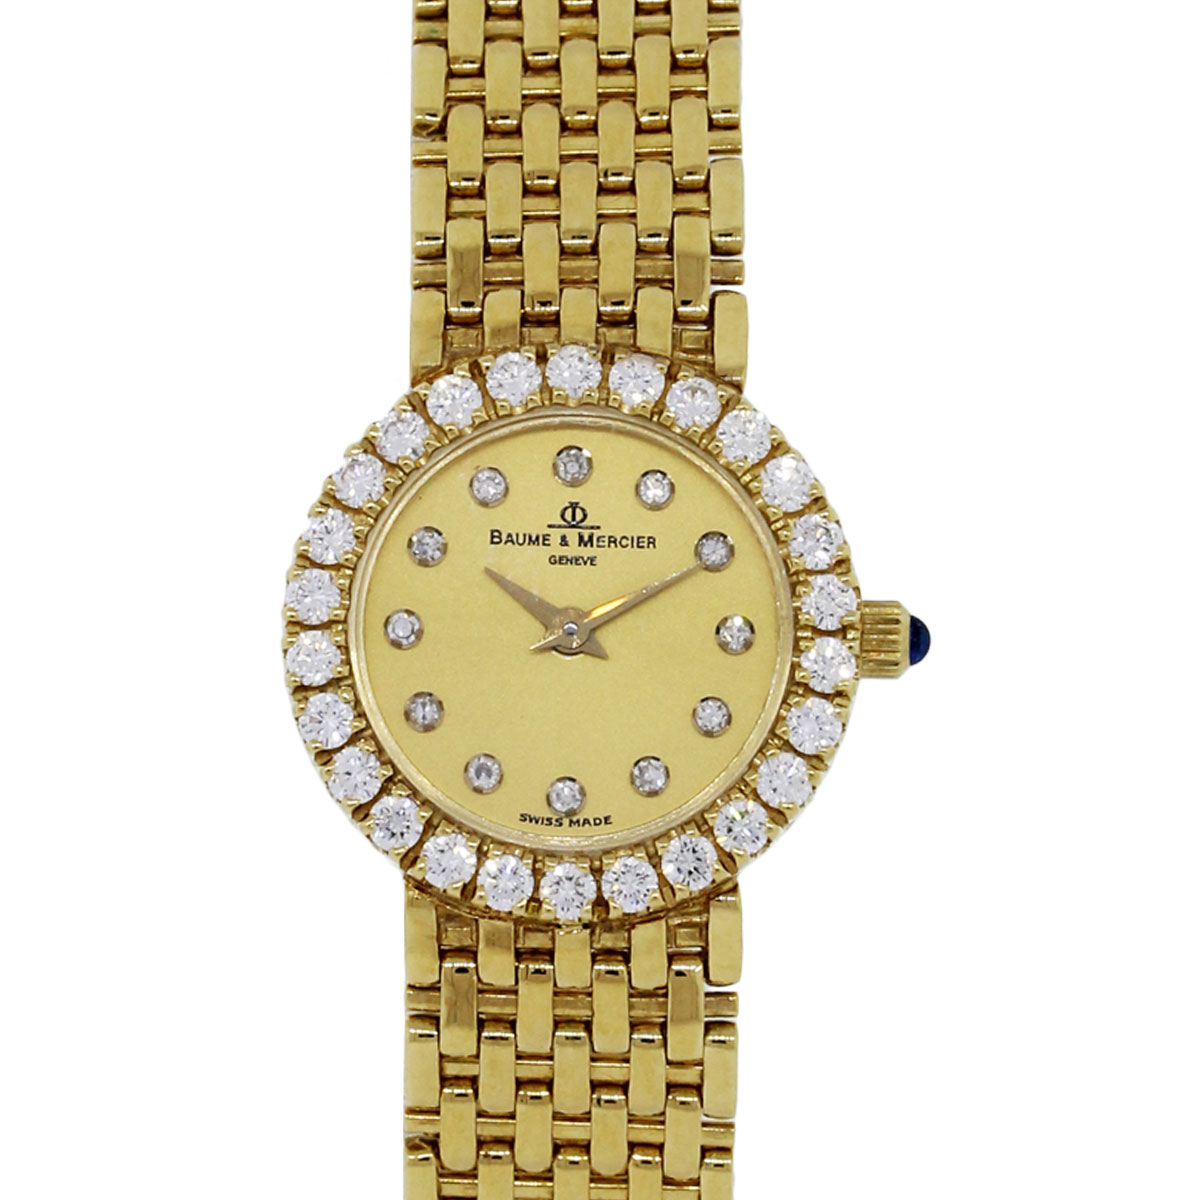 You are viewing this Baume & Mercier 18k Yellow Gold Diamond Bezel Watch!